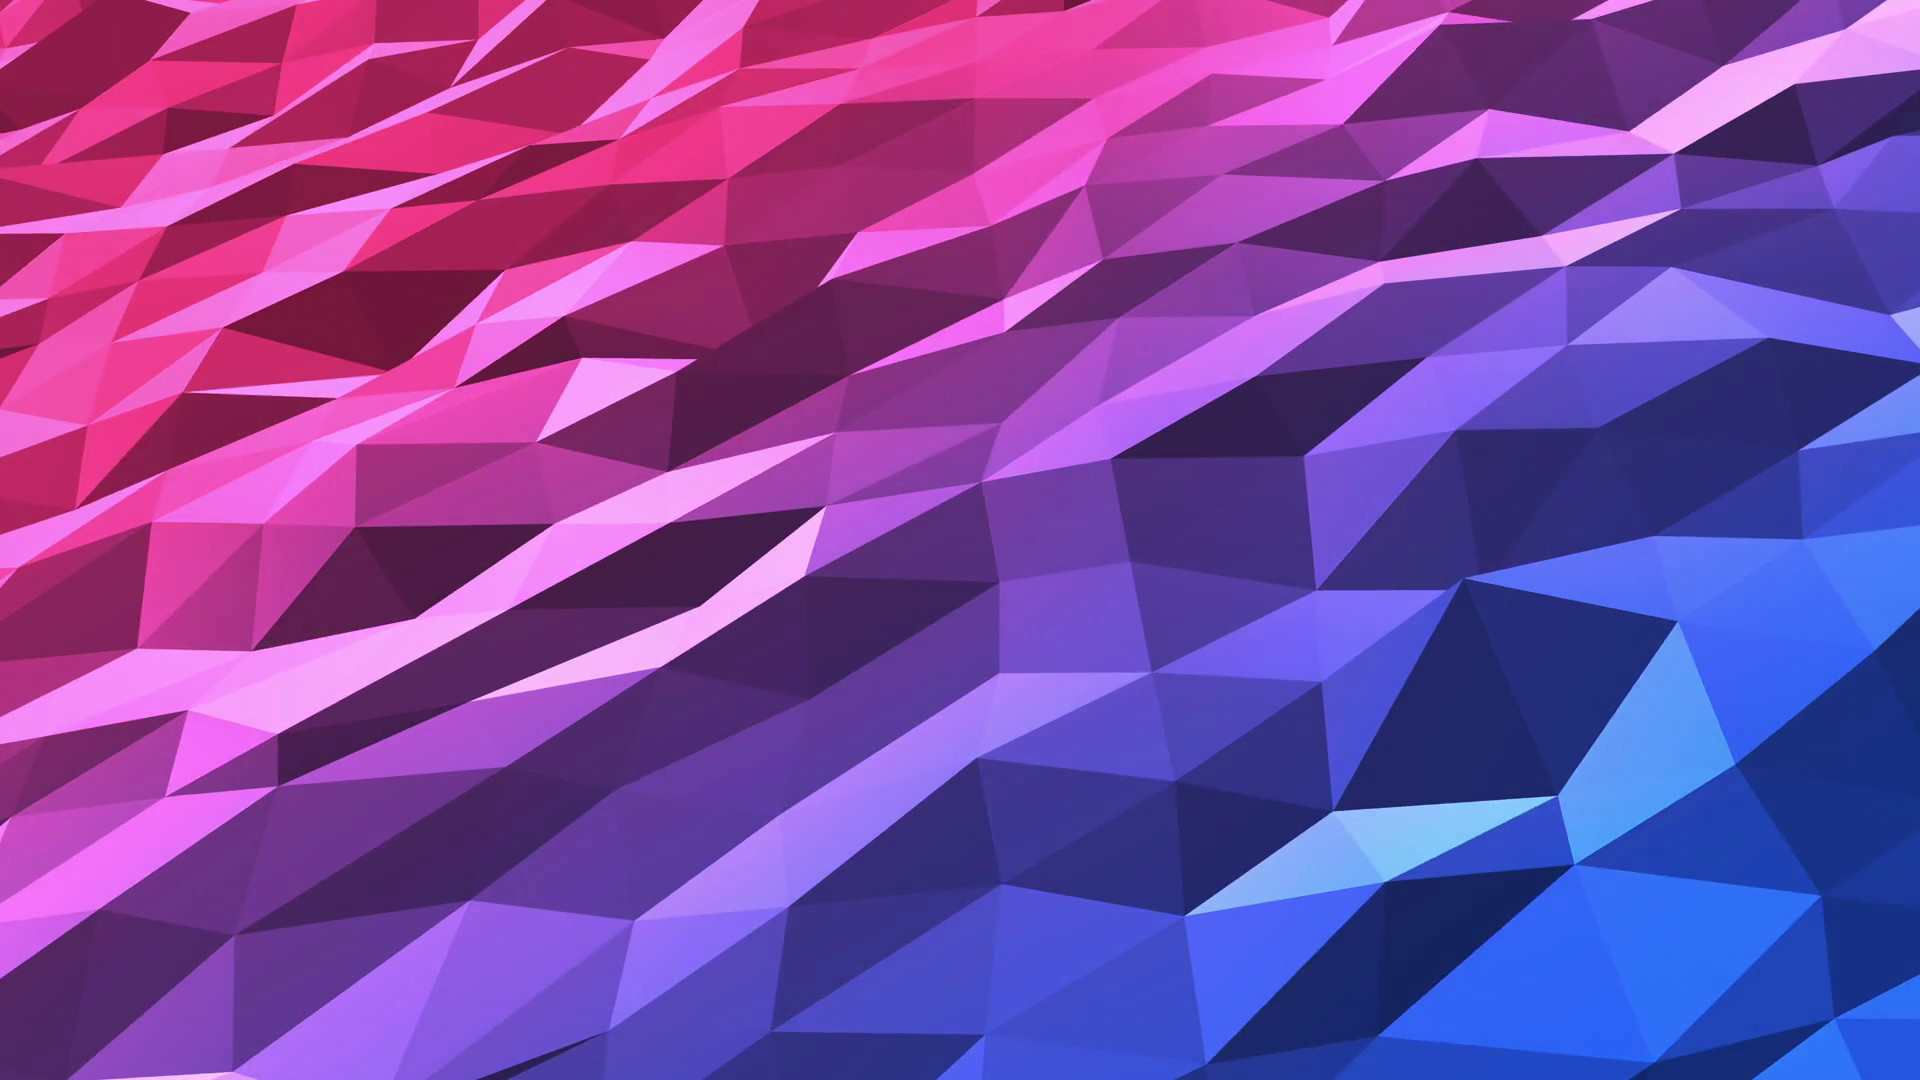 Red Blue Pink Magenta Polygons | Low Poly | Seamless Looping Motion  Background DCI 4K Ultra HD Full HD Motion Background – VideoBlocks